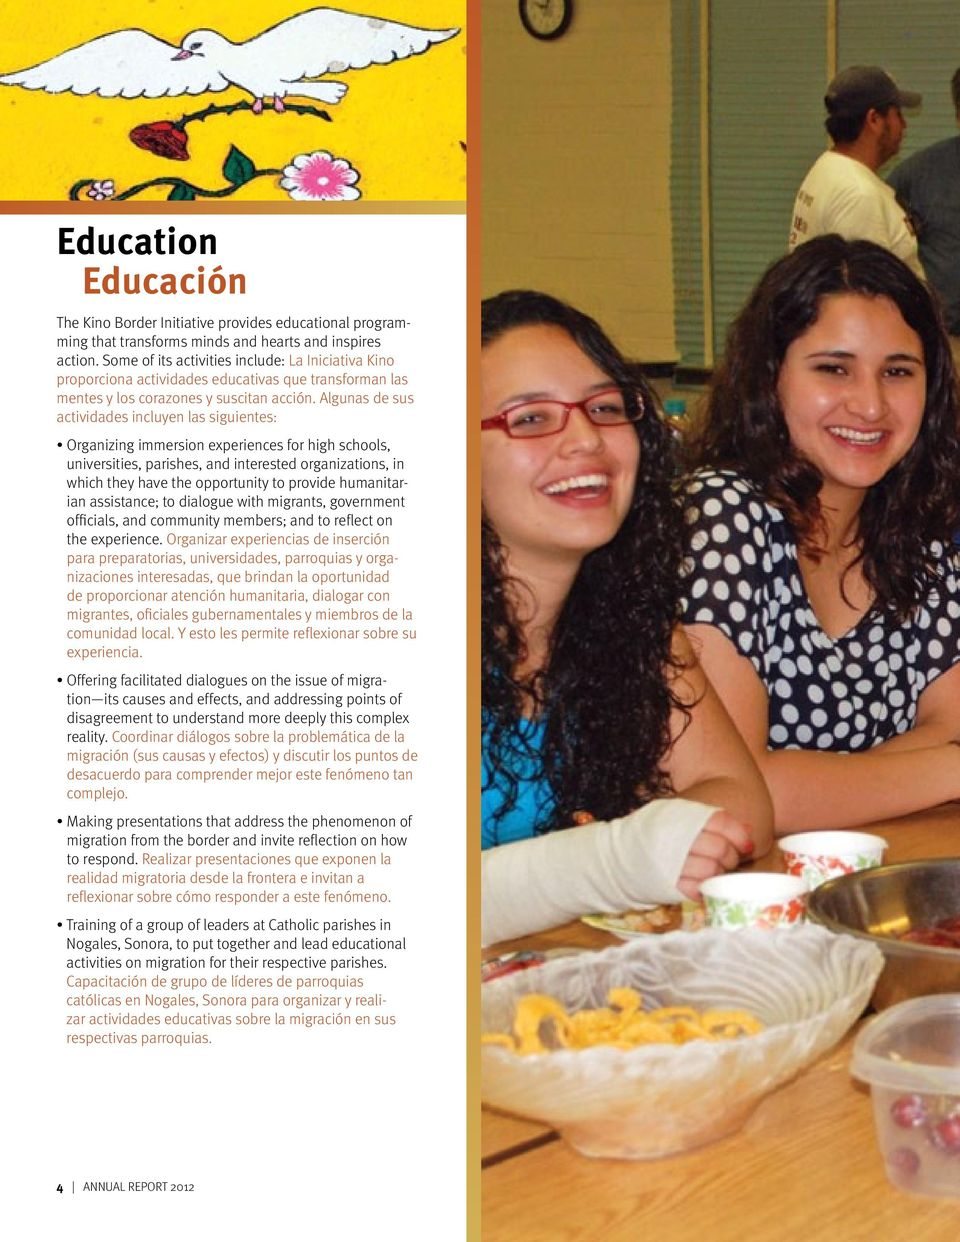 Algunas de sus actividades incluyen las siguientes: Organizing immersion experiences for high schools, universities, parishes, and interested organizations, in which they have the opportunity to